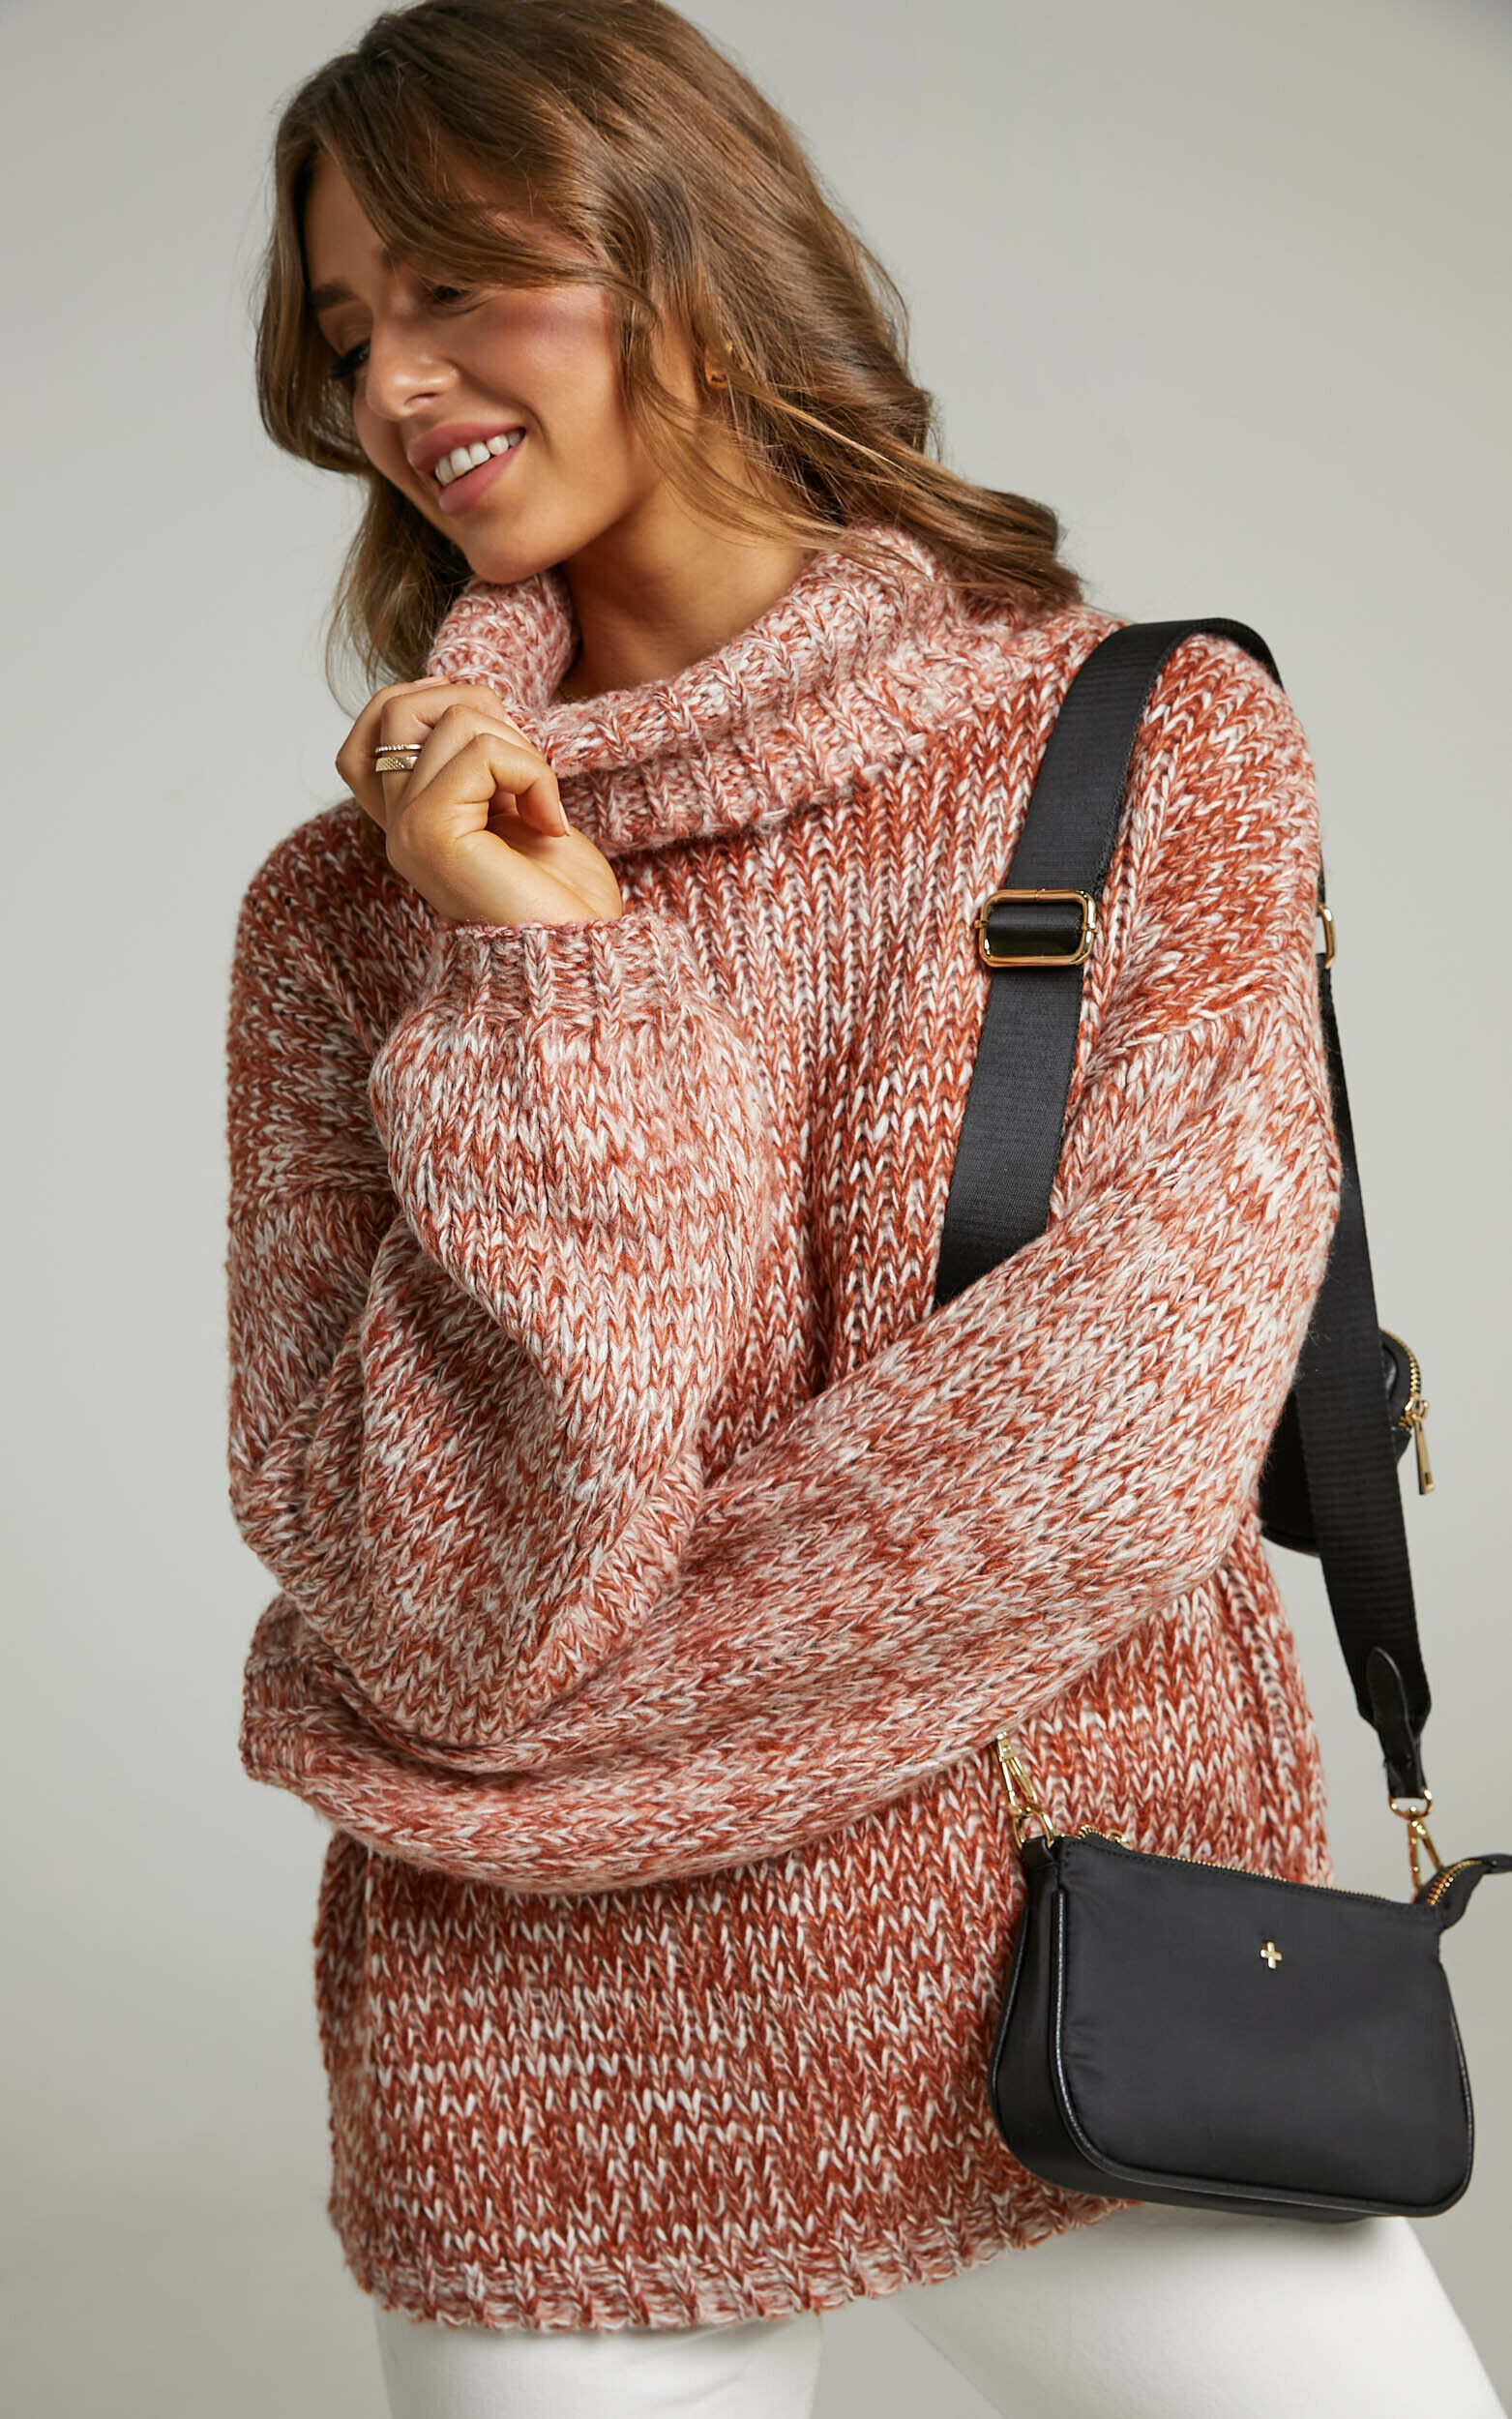 Juney Oversized Knit Jumper with High Neck and Balloon Sleeves in Beige - 06, BRN1, super-hi-res image number null